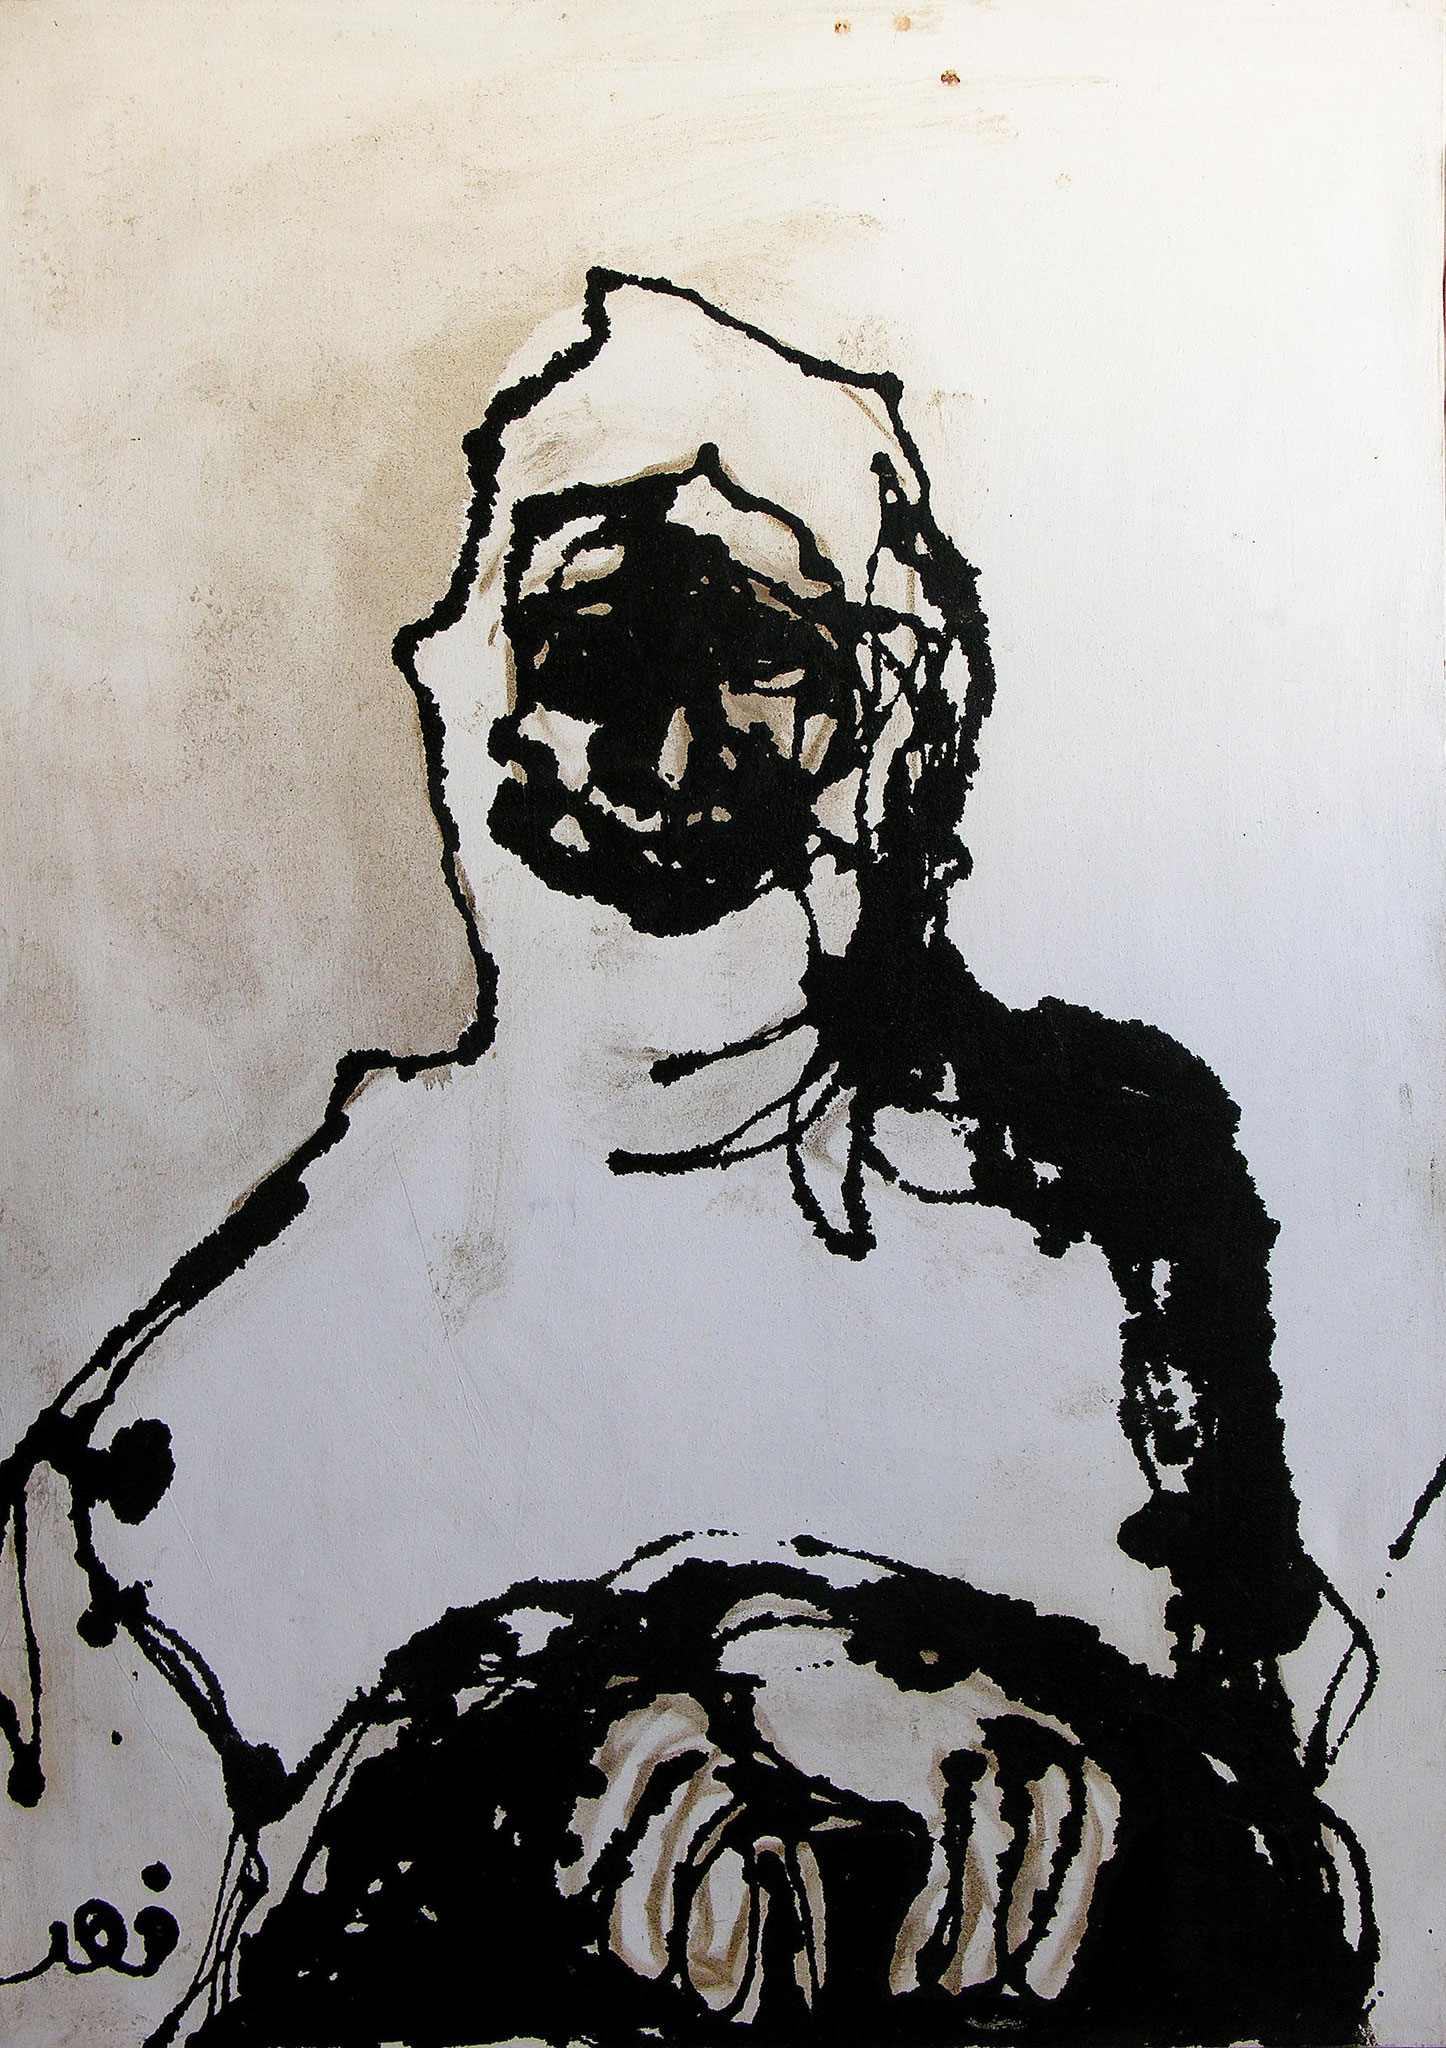 Women, Acrylic and tar on canvas, 80 x 110 cm, 2000